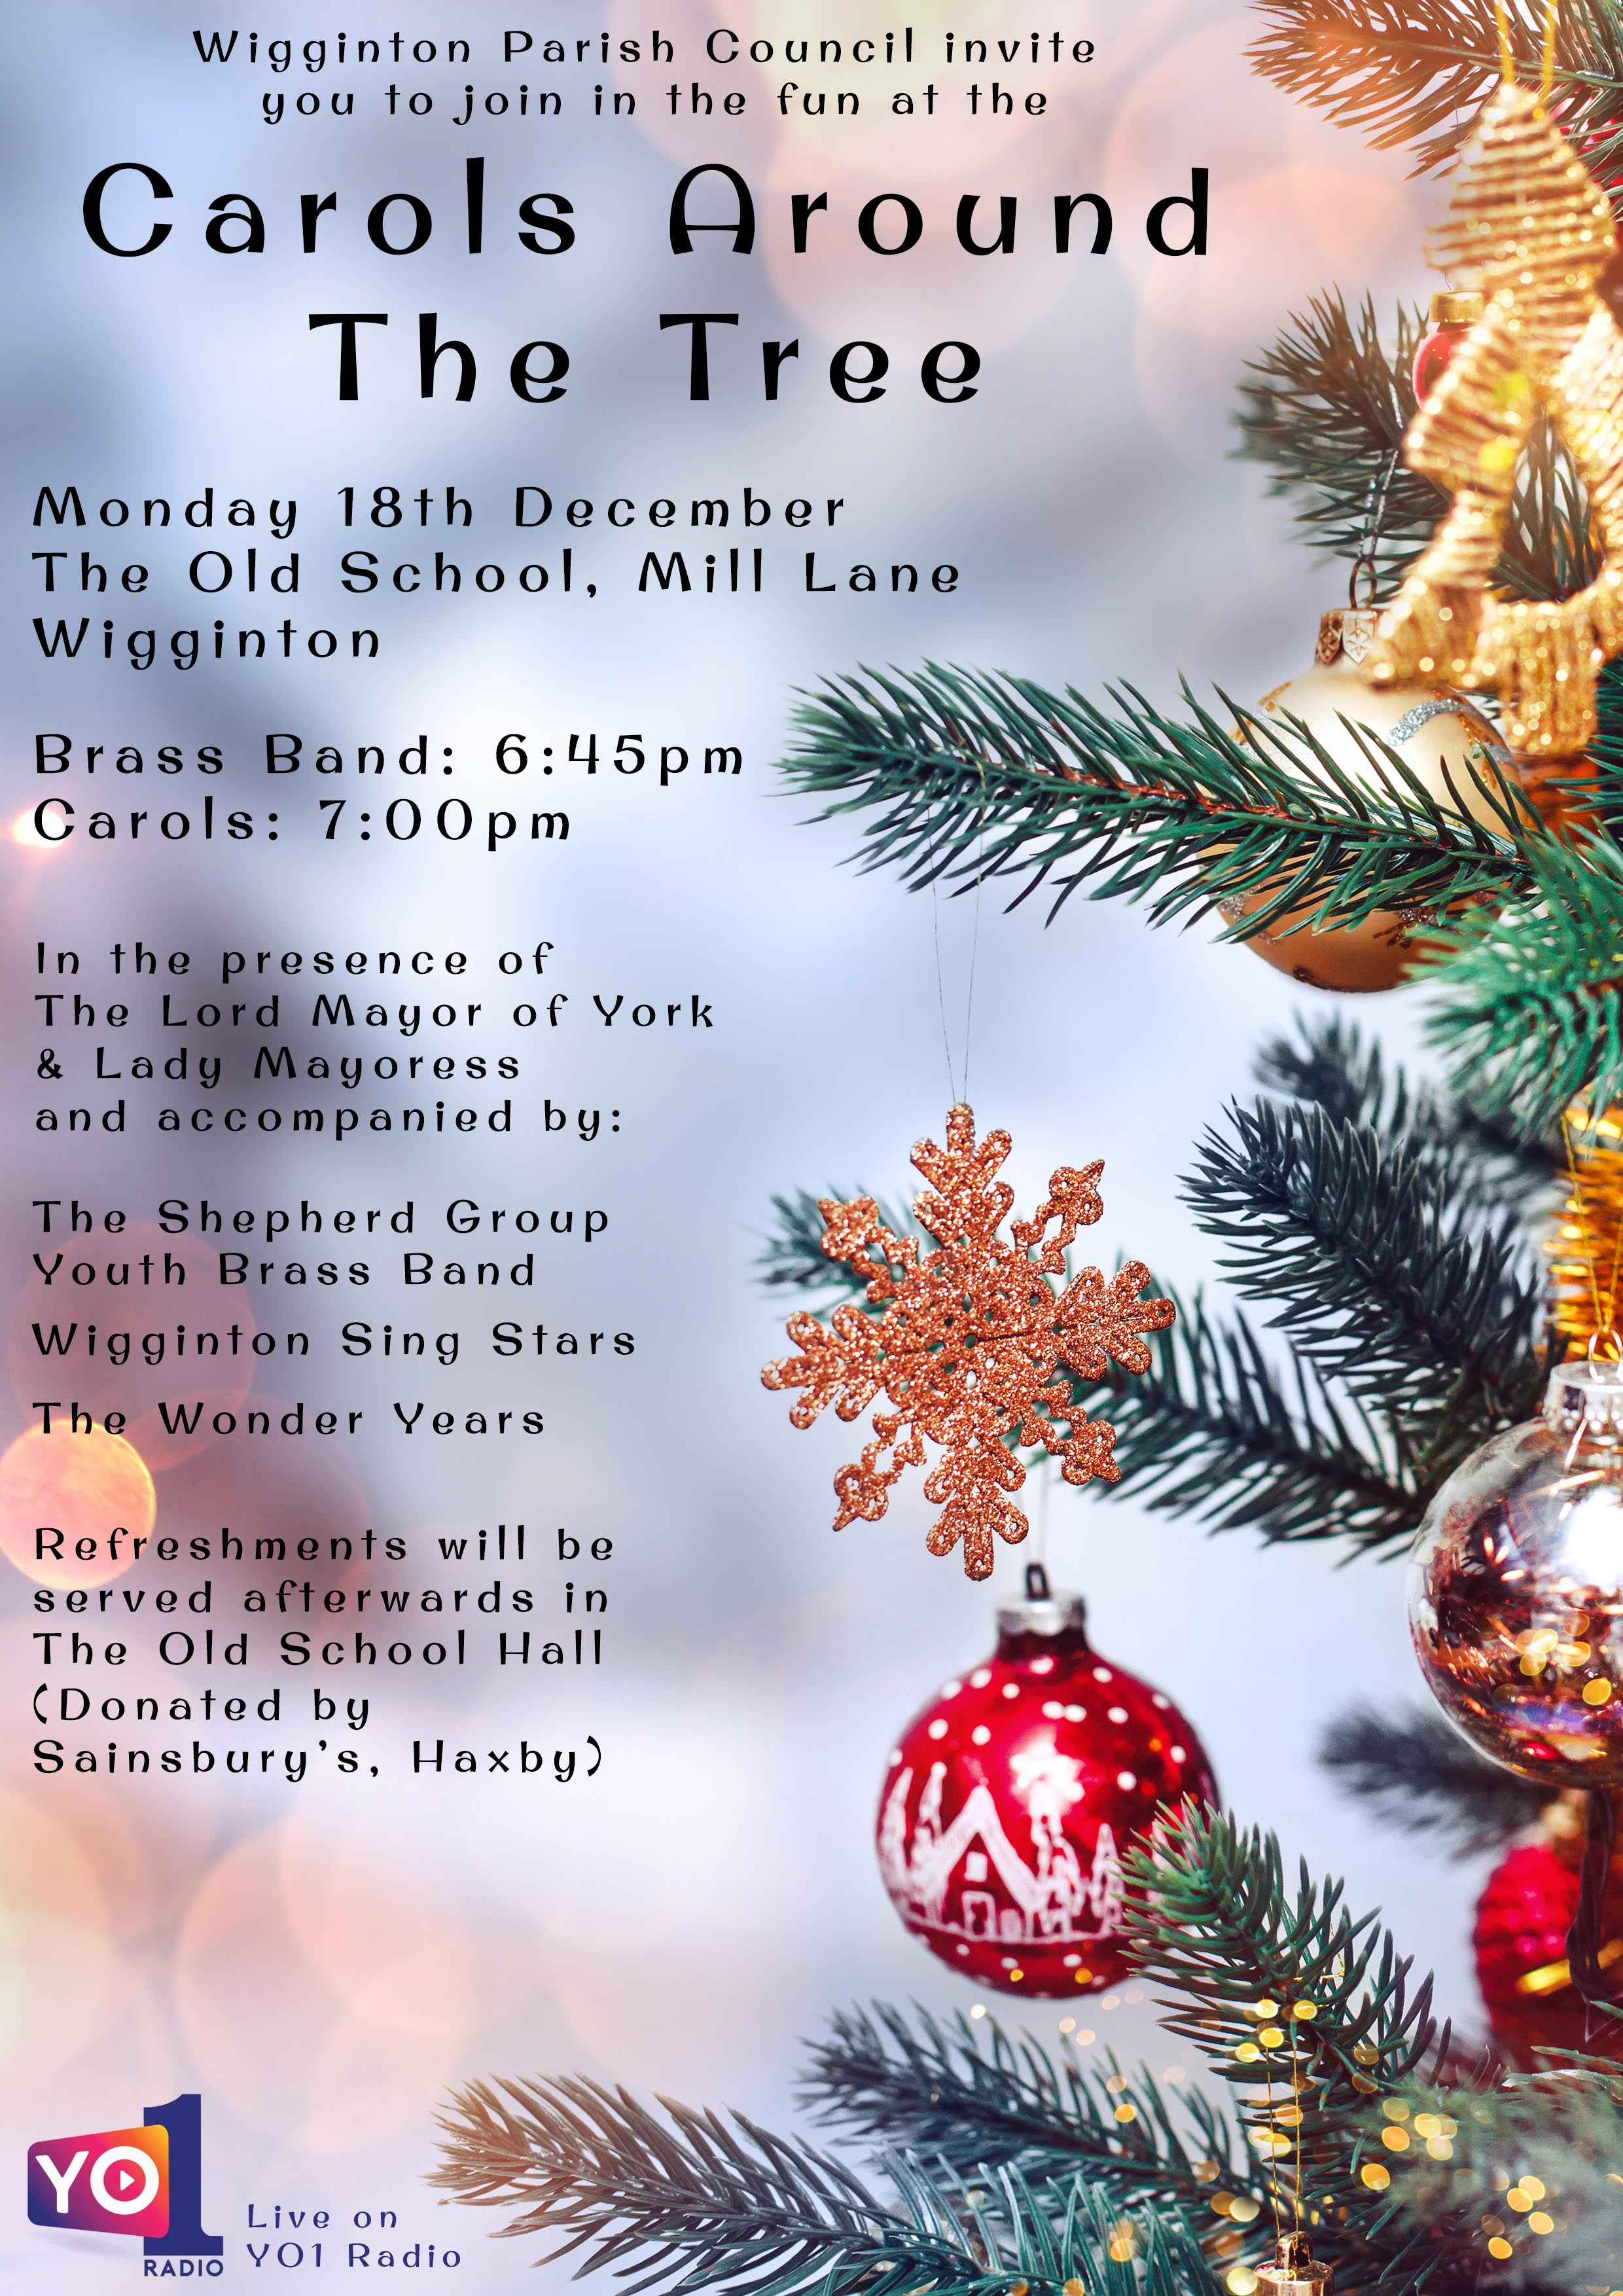 Carols around the tree poster 2017.jpg